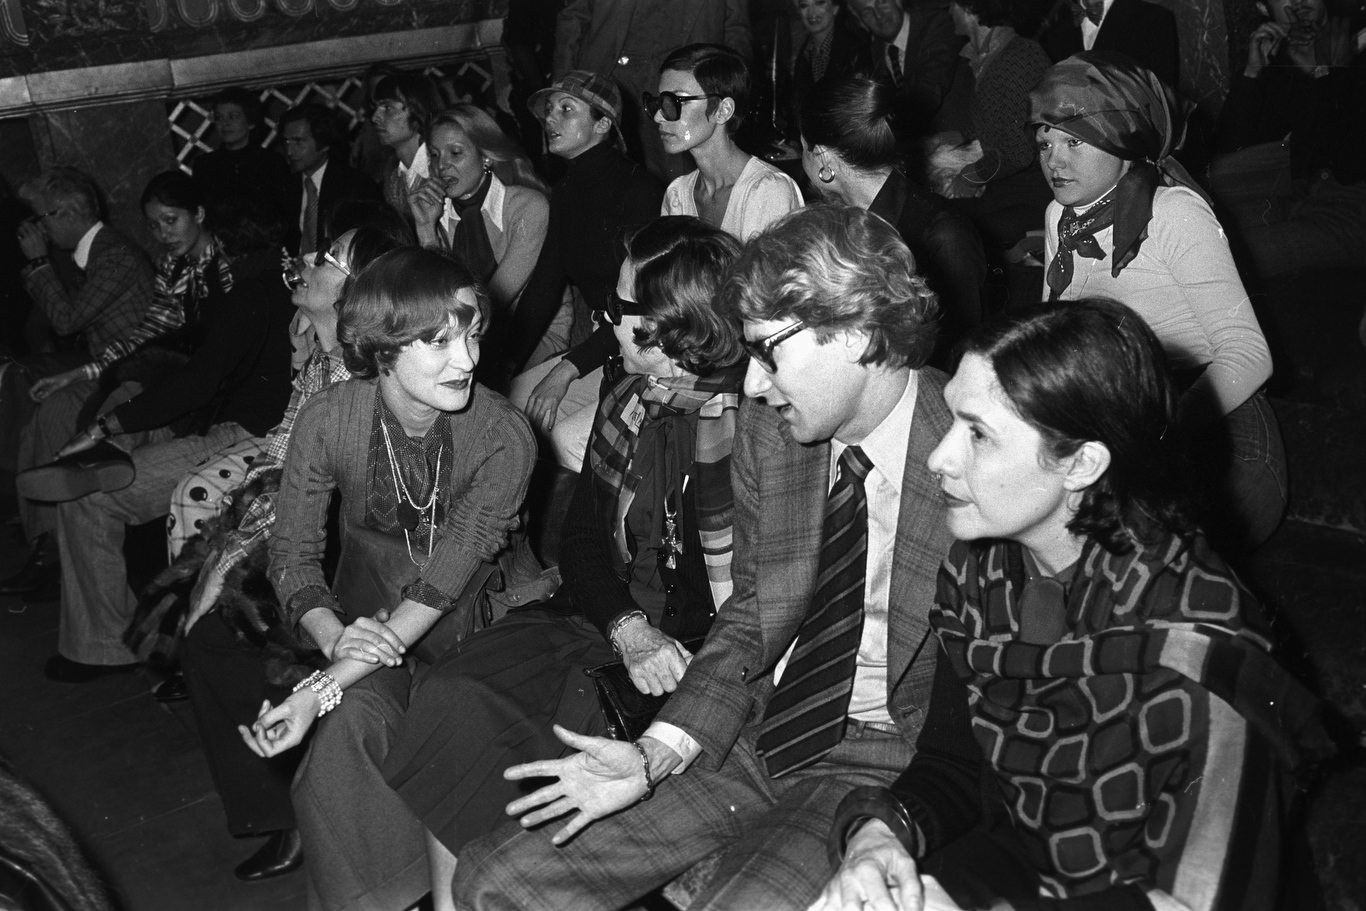 Yves Saint Laurent, Loulou de la Falaise and friends attend the fashion show to benefit the restoration of the Chateau of Versailles, five American designers matching talents with five French couturiers at the Versailles Palace on November 28, 1973 in Versailles, France...Article title: 'One night and pouf! It's gone!Battle of Versailles, Versailles